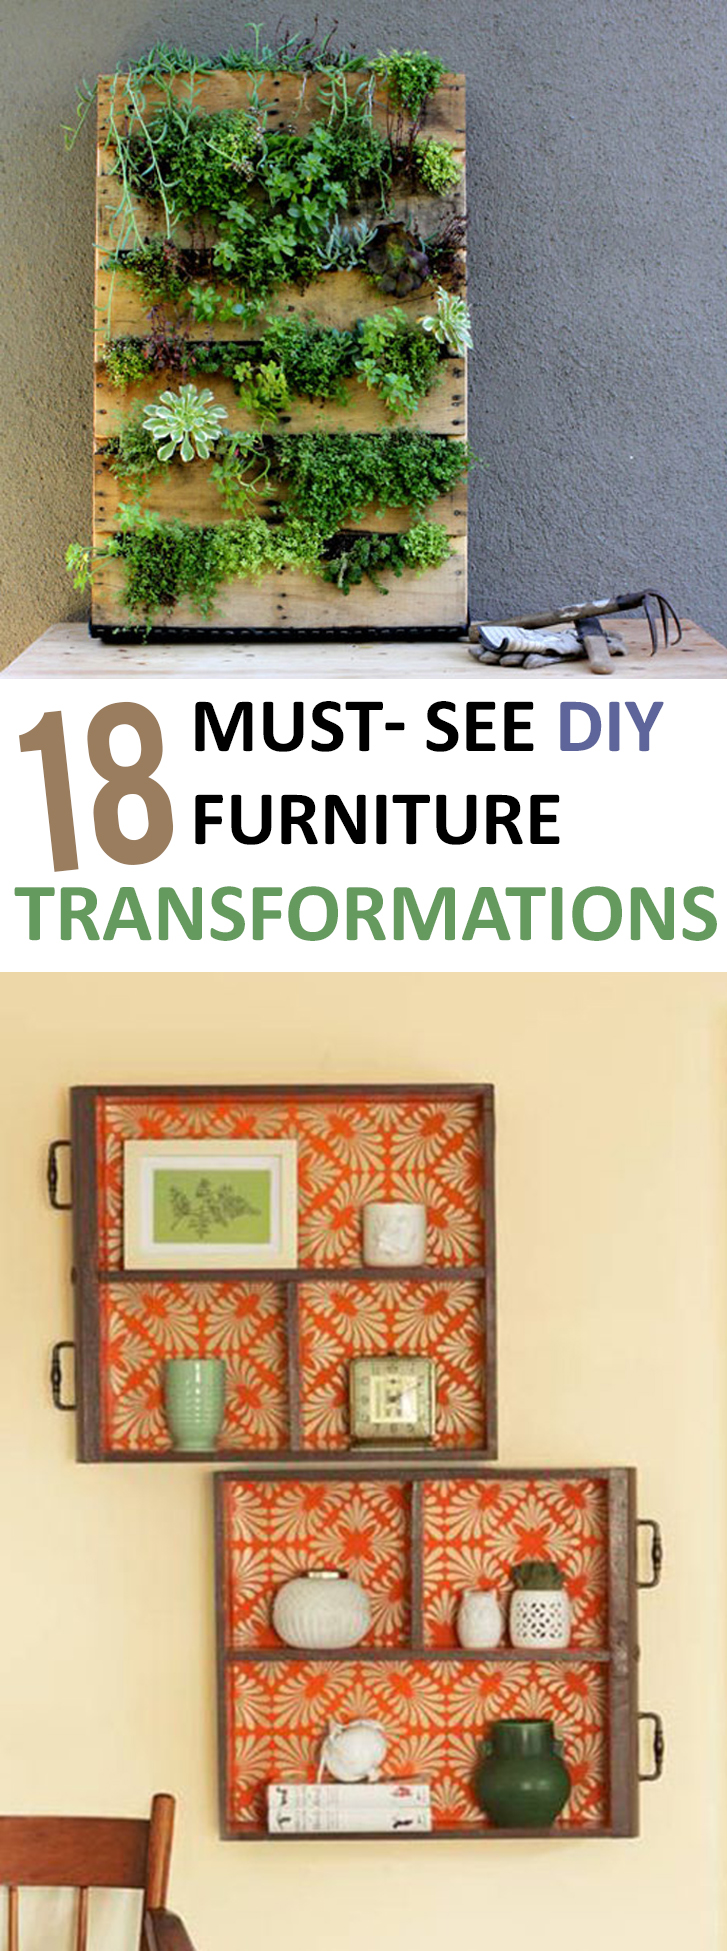 18 Must See Diy Furniture Transformations